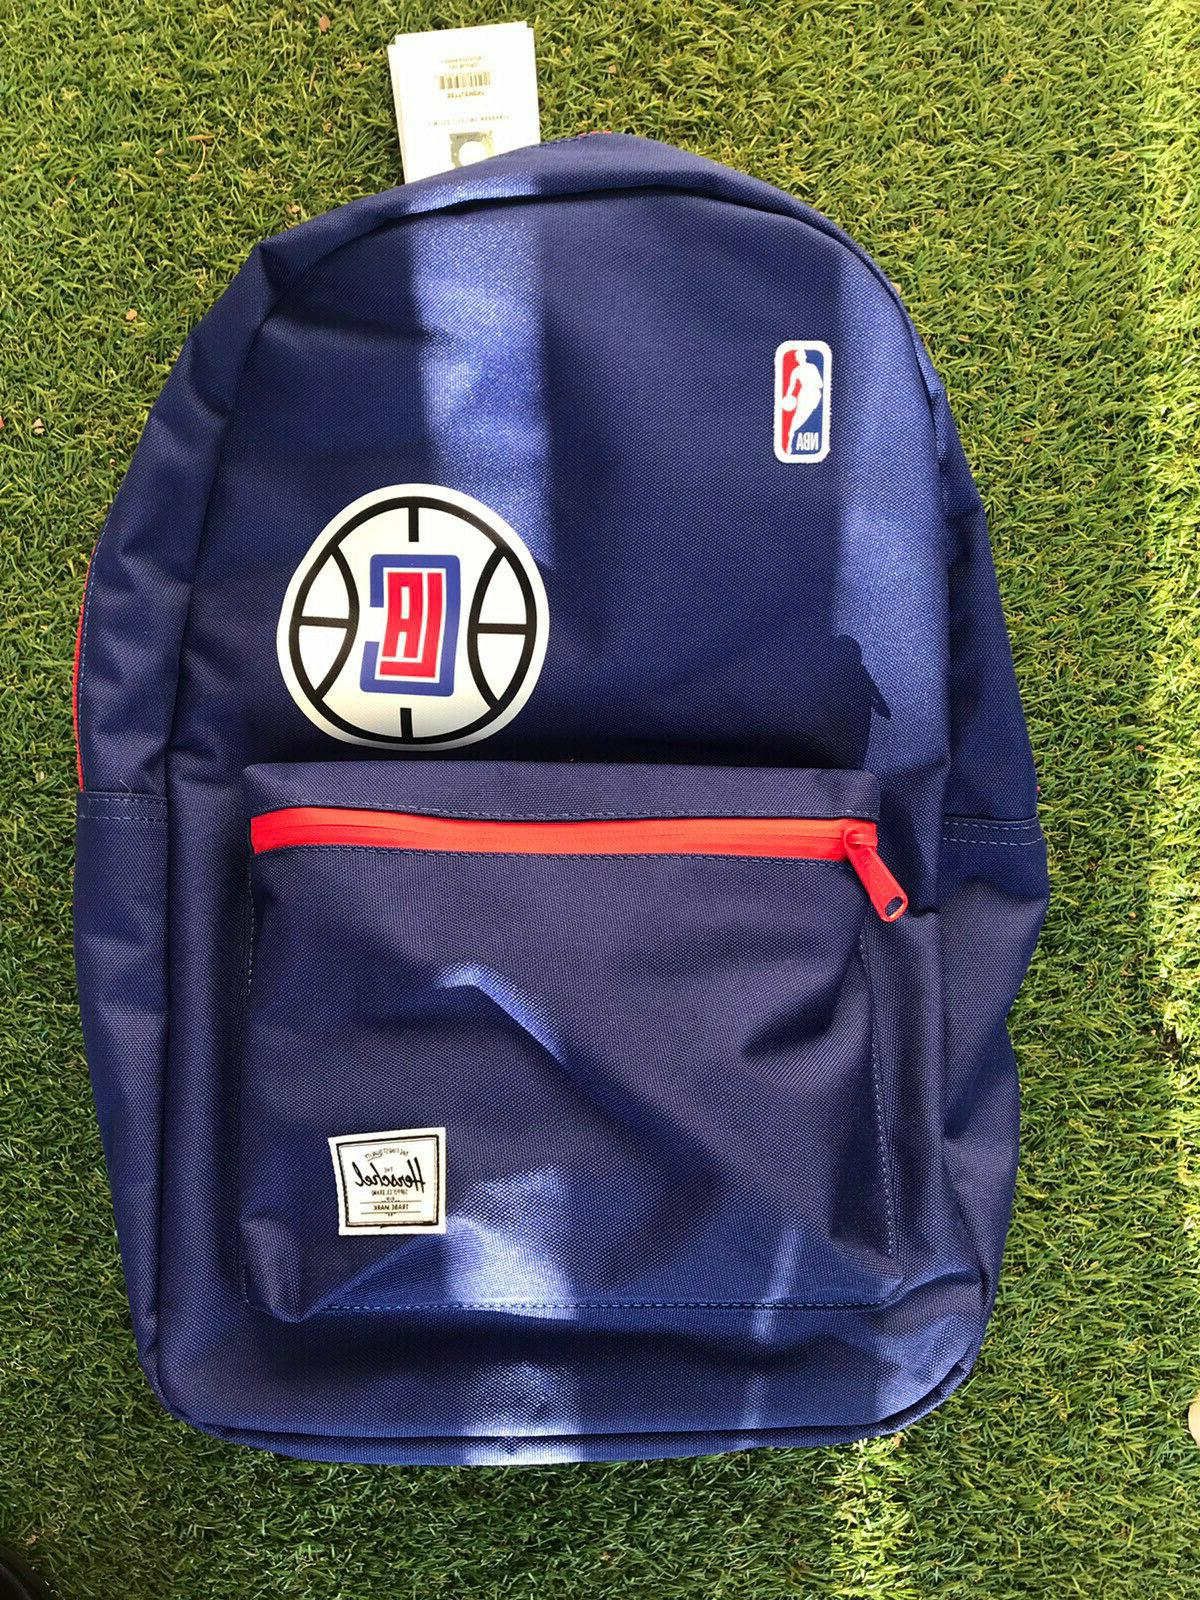 brand new los angeles clippers backpack blue